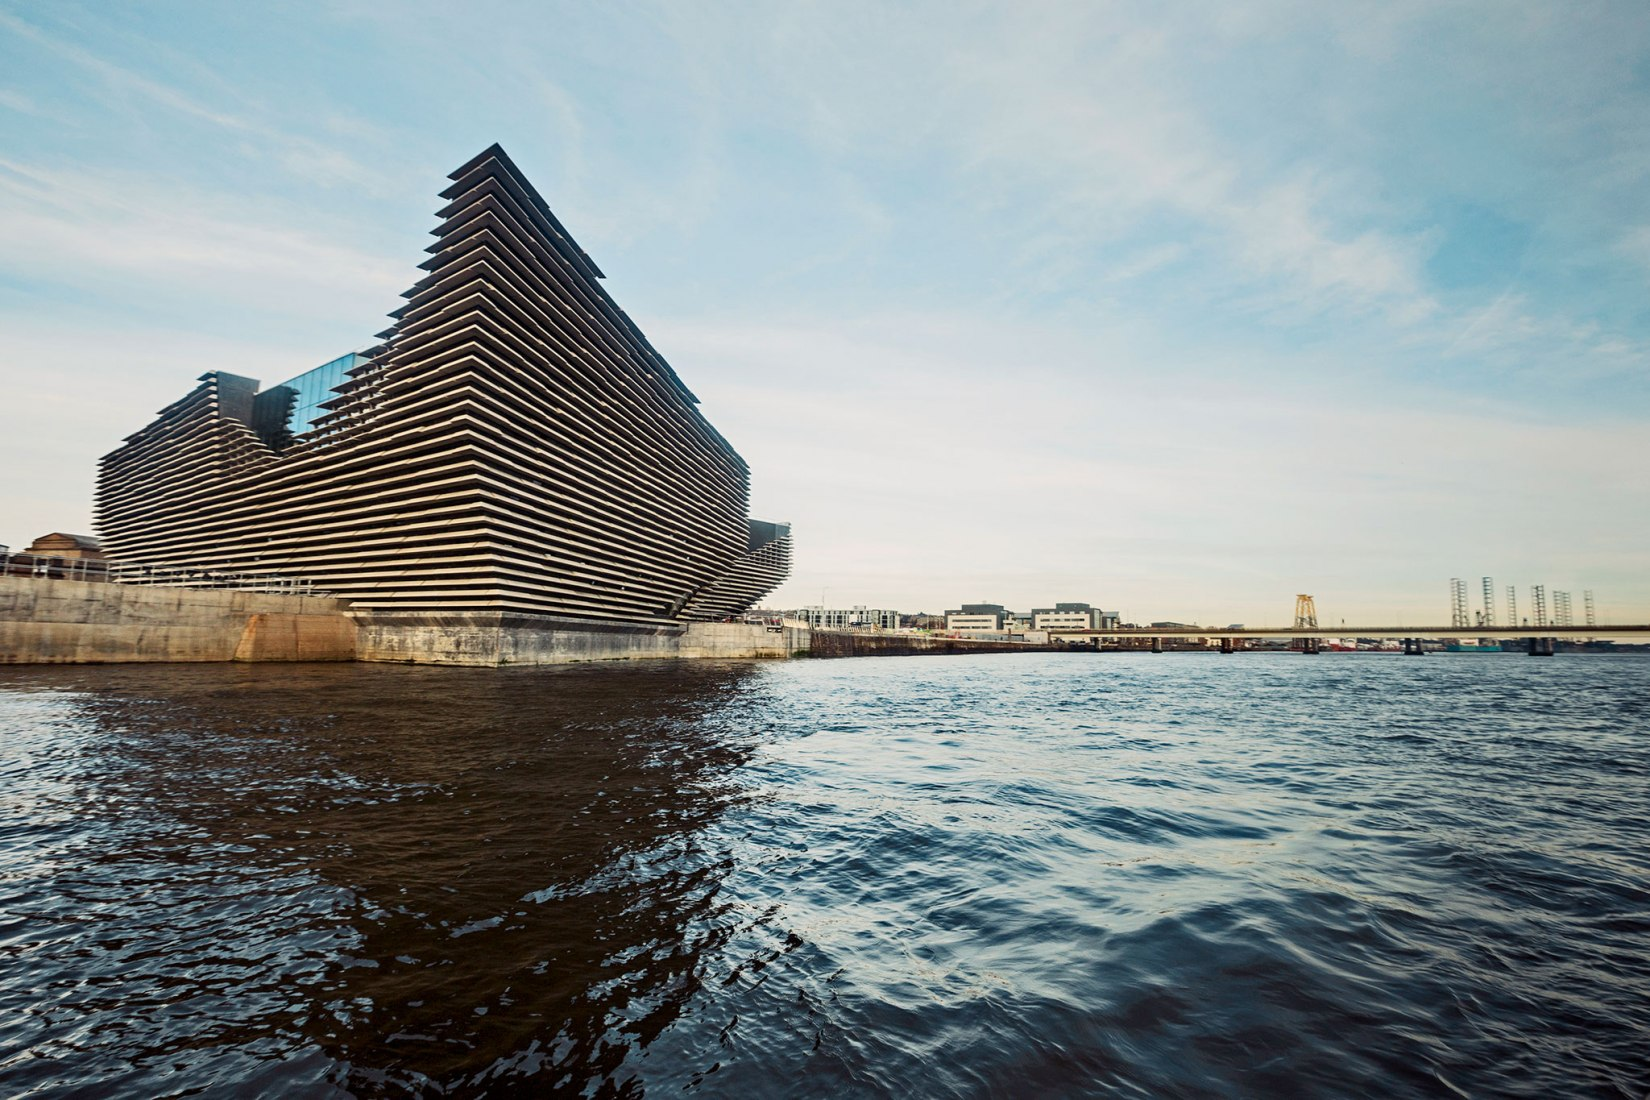 December 2017. V&A Dundee by Kengo Kuma. Image courtesy of V&A Dundee.